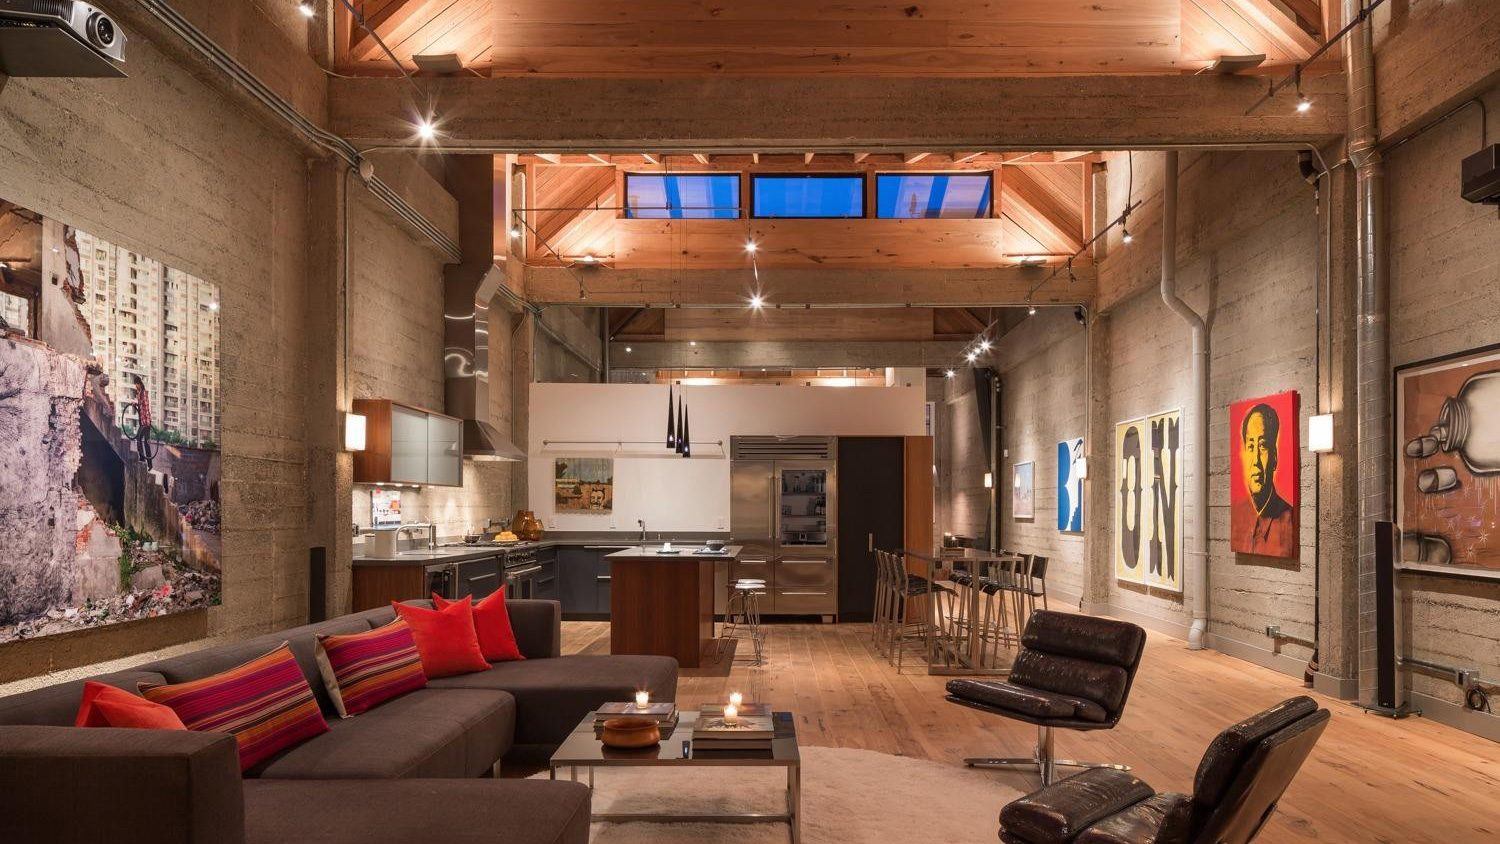 Piece of Art: This Stunning San Francisco Loft Inspired